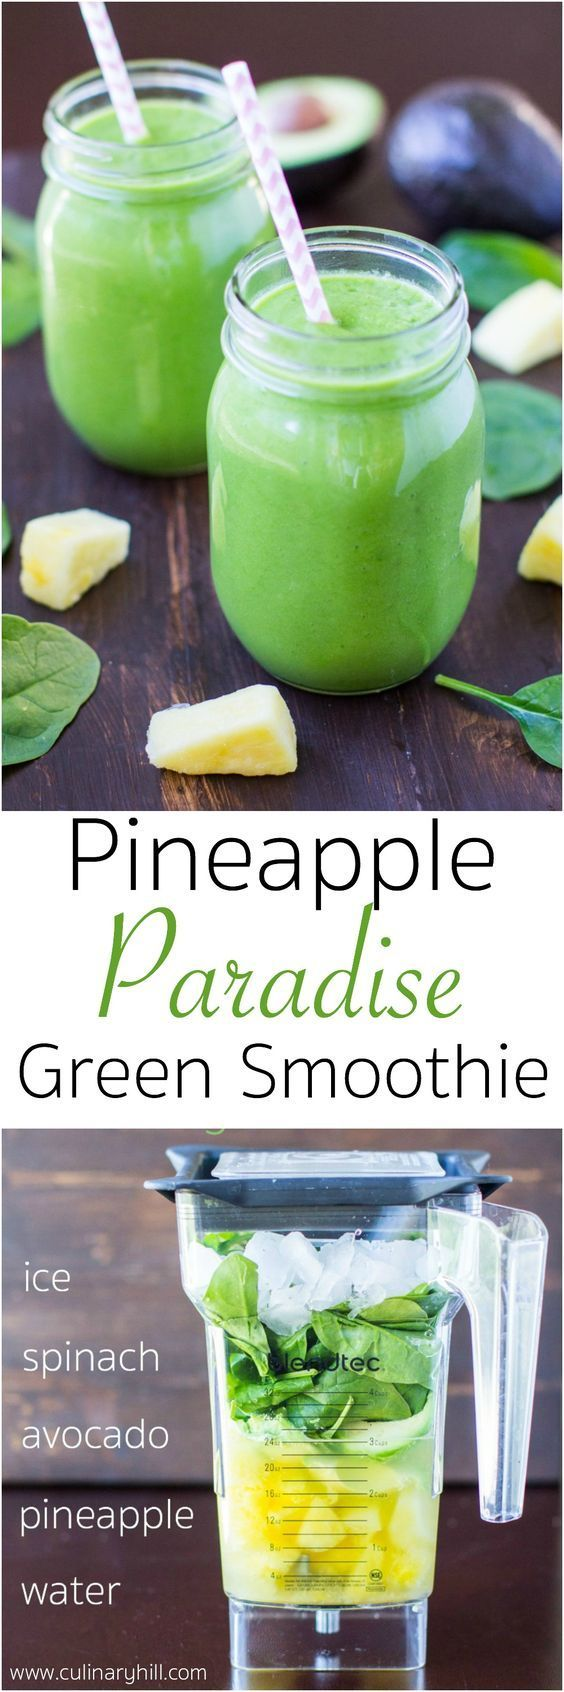 Us vegans are always on yhe lookout for great breakfast smoothies, right? This recipe is Vegan, Gluten free, and Paleo-friendly.